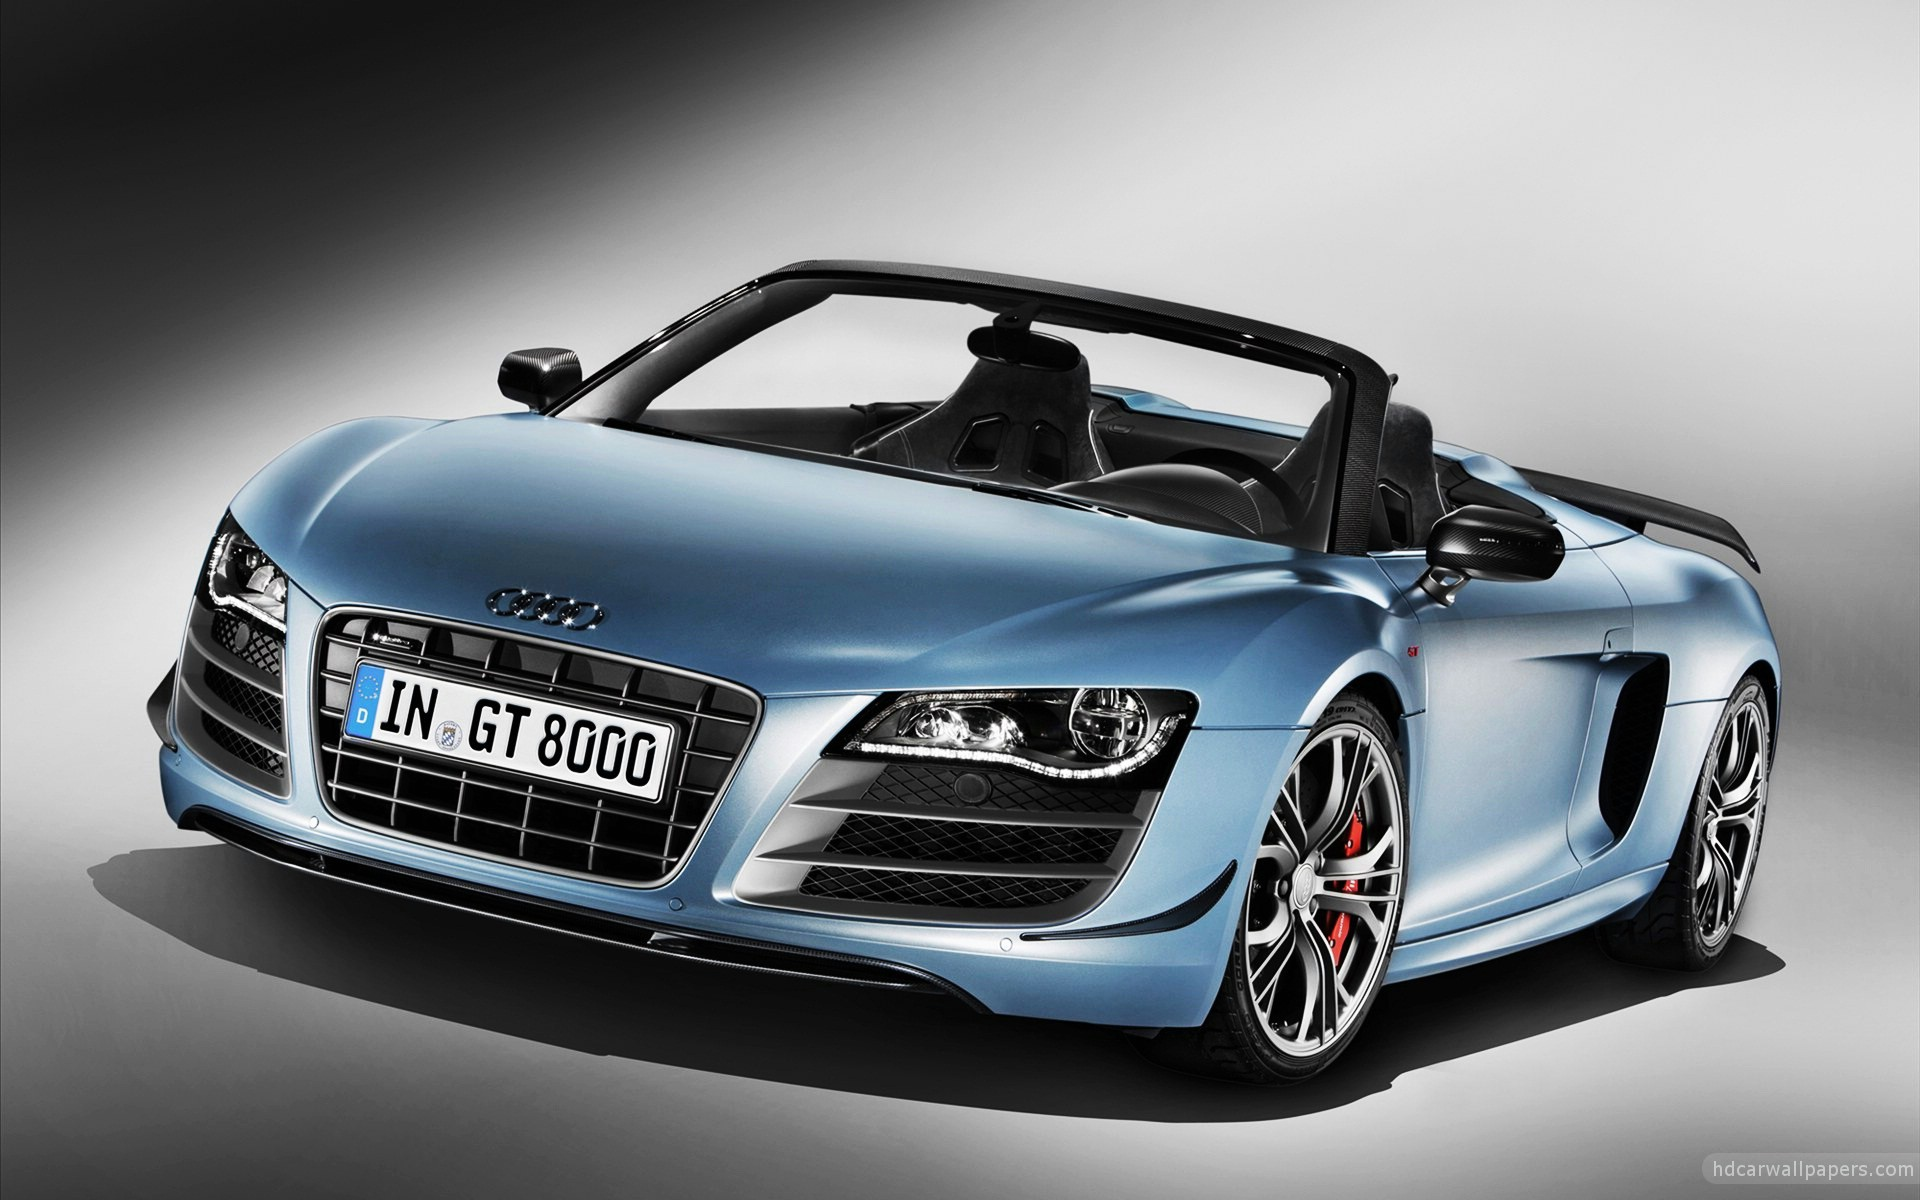 2012 Audi R8 GT Spyder Wallpaper HD Car Wallpapers Chainimage 1920x1200